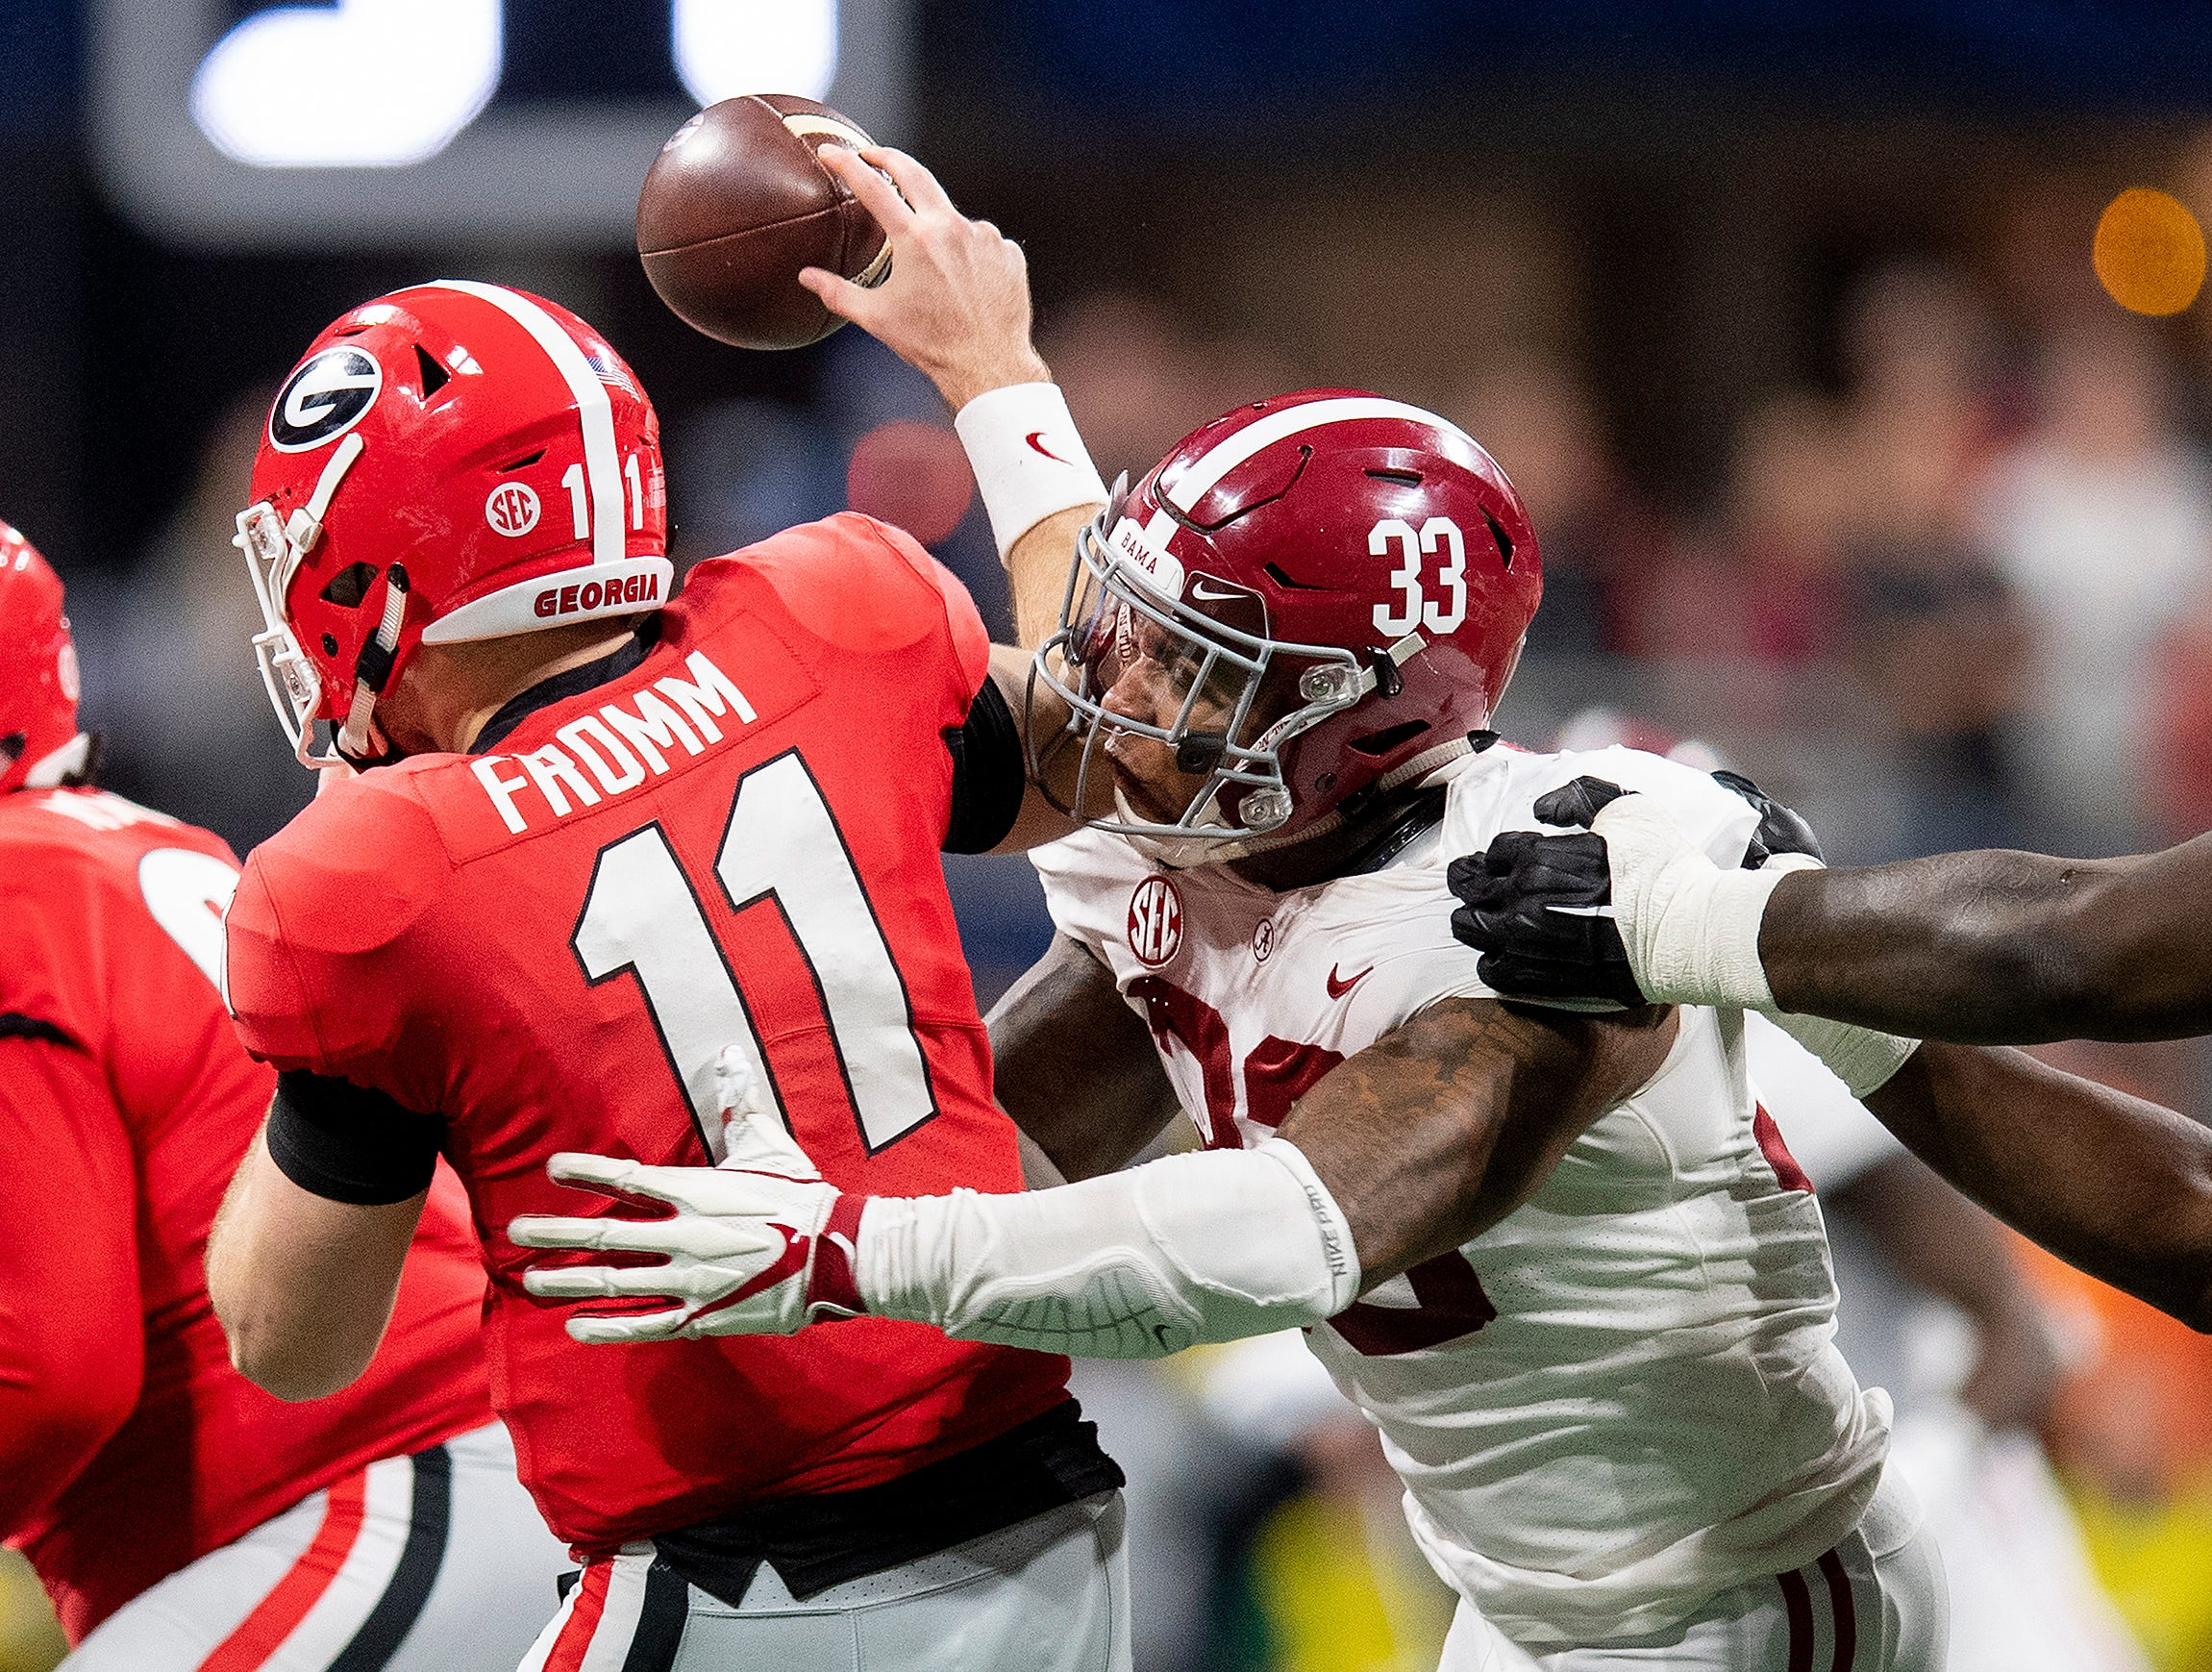 Alabama linebacker Anfernee Jennings (33) hits Georgia quarterback Jake Fromm (11) causing the pass to fall incomplete late in the SEC Championship Game at Mercedes Benz Stadium in Atlanta, Ga., on Saturday December 1, 2018.